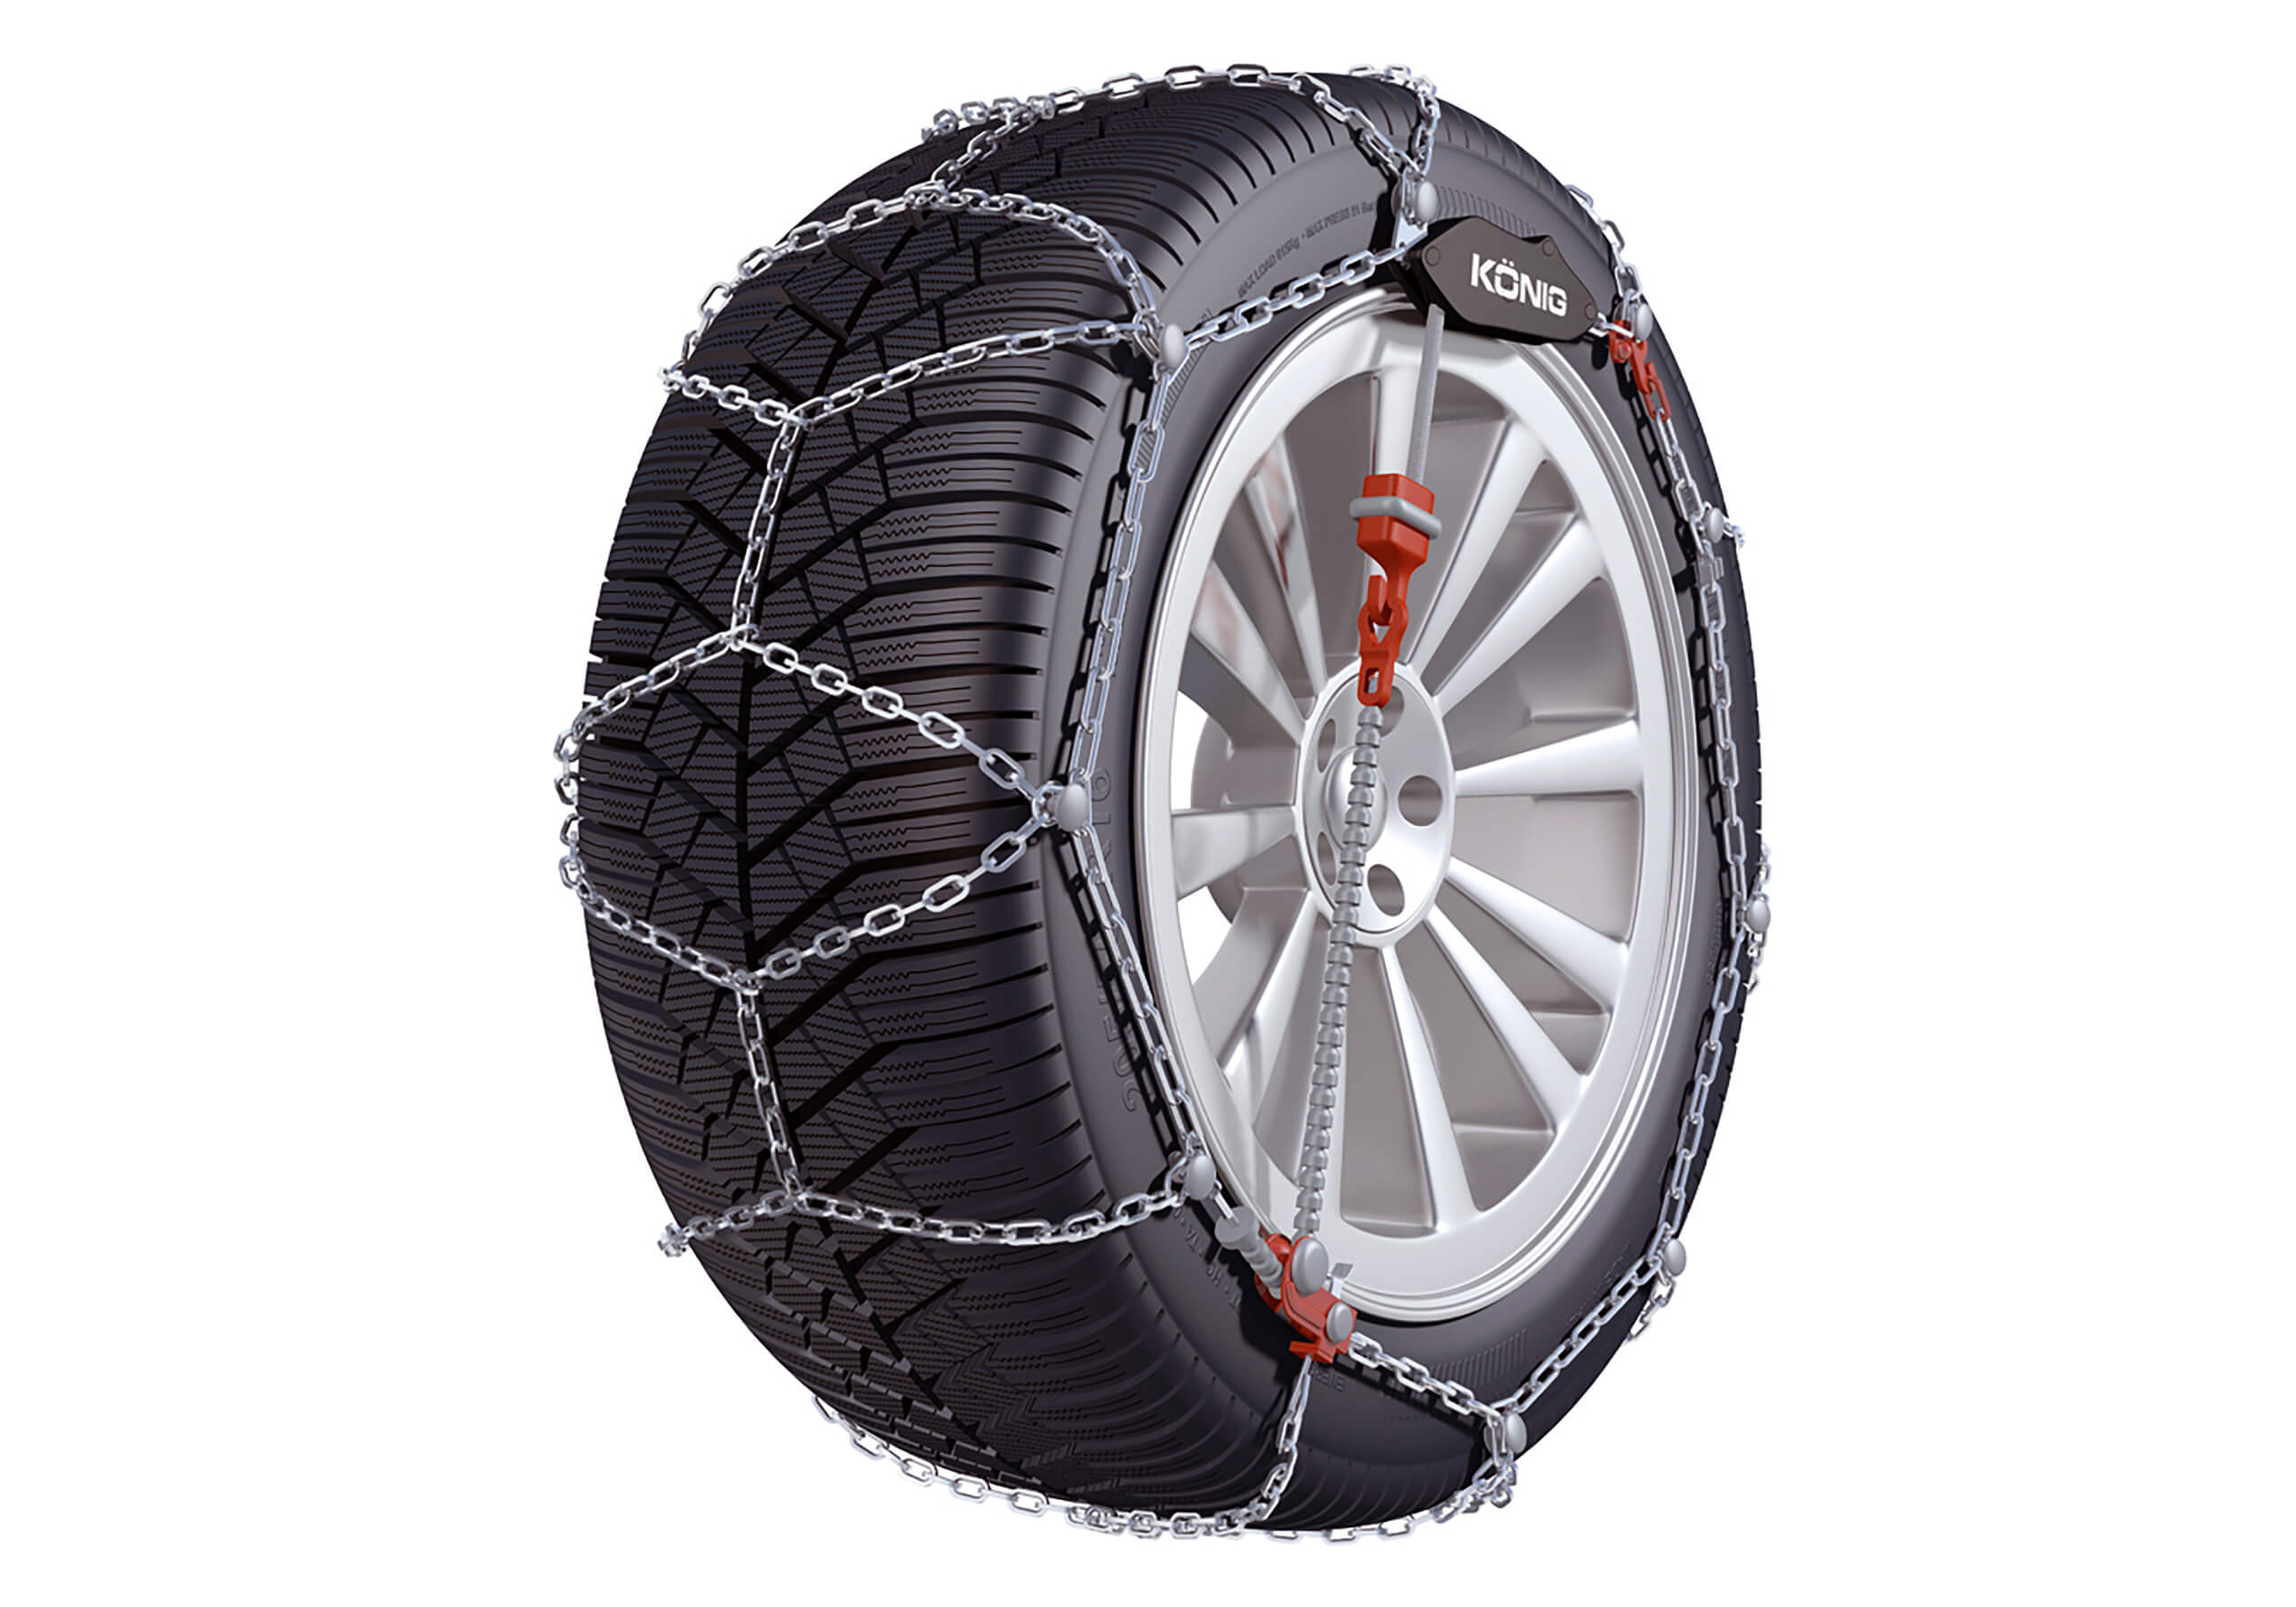 Chevrolet Corvette C7 coupe (2015 onwards):König CG-9 snow chains (pair) no. CG-9 105